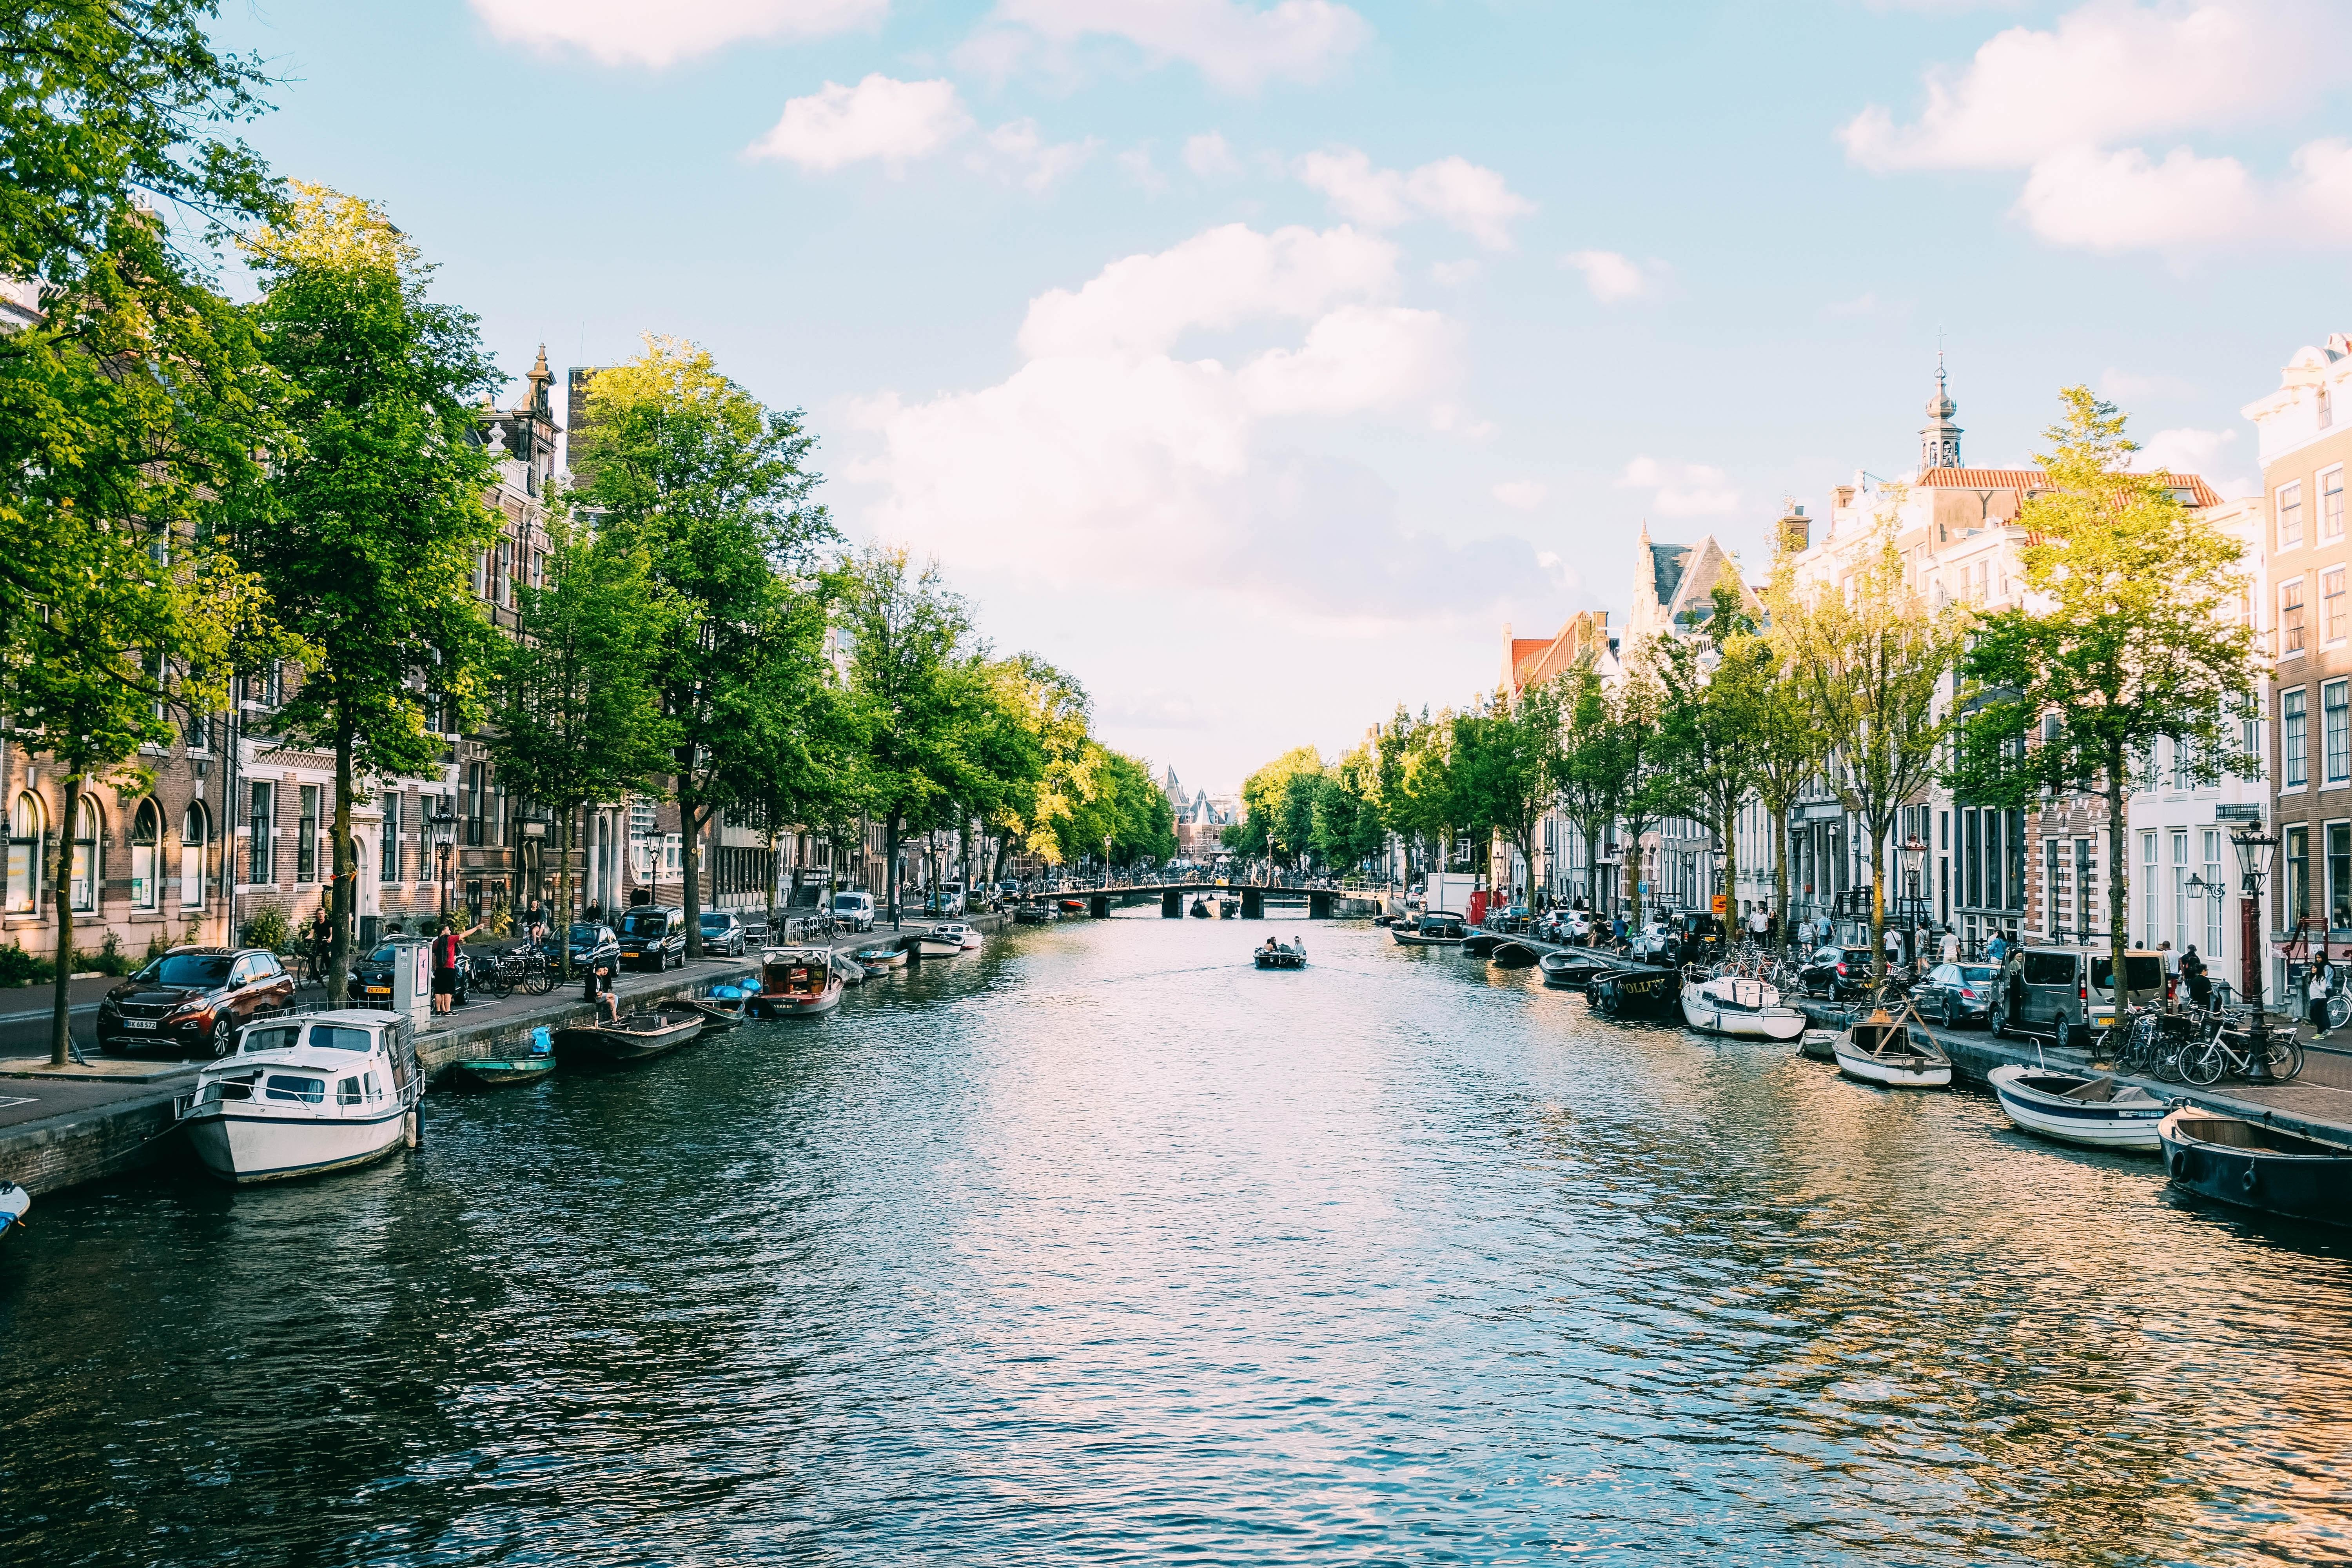 pictured here is Amsterdam, one of the Netherlands cities which is embracing the circular economy and rethinking its attitude towards water usage